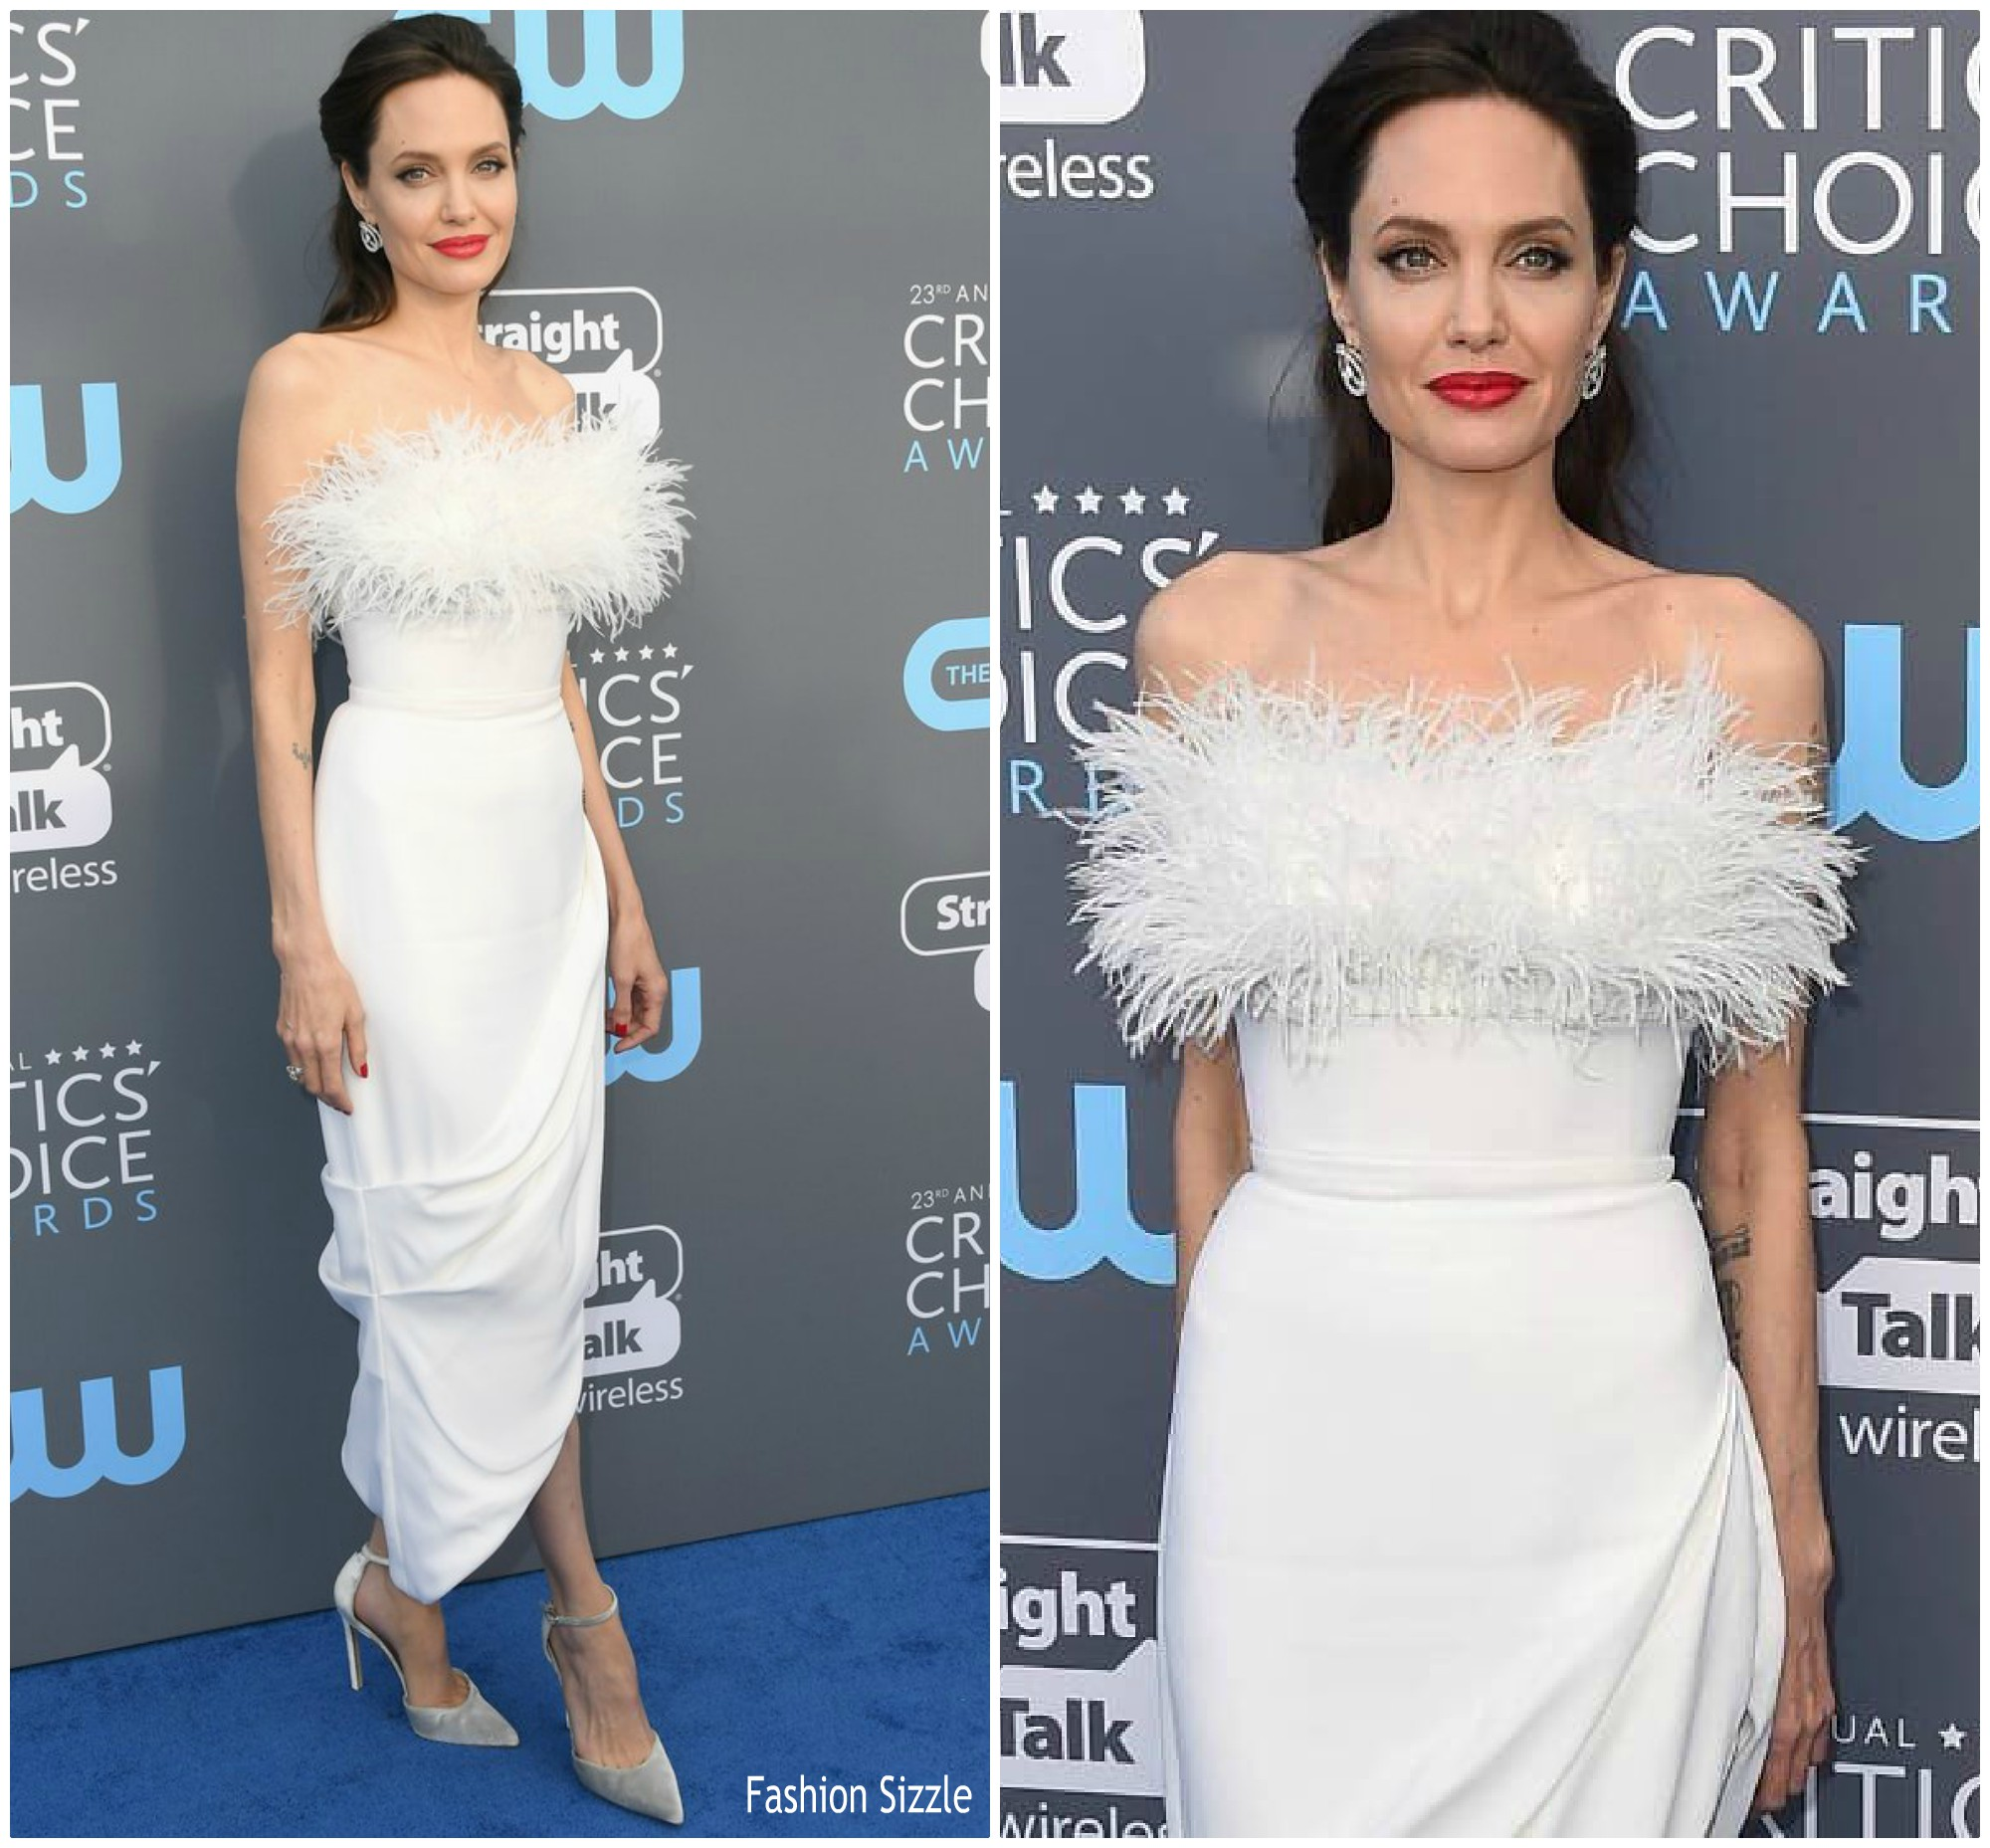 angelina-jolie-in-ralph-russo-2018-critics-choice-awards